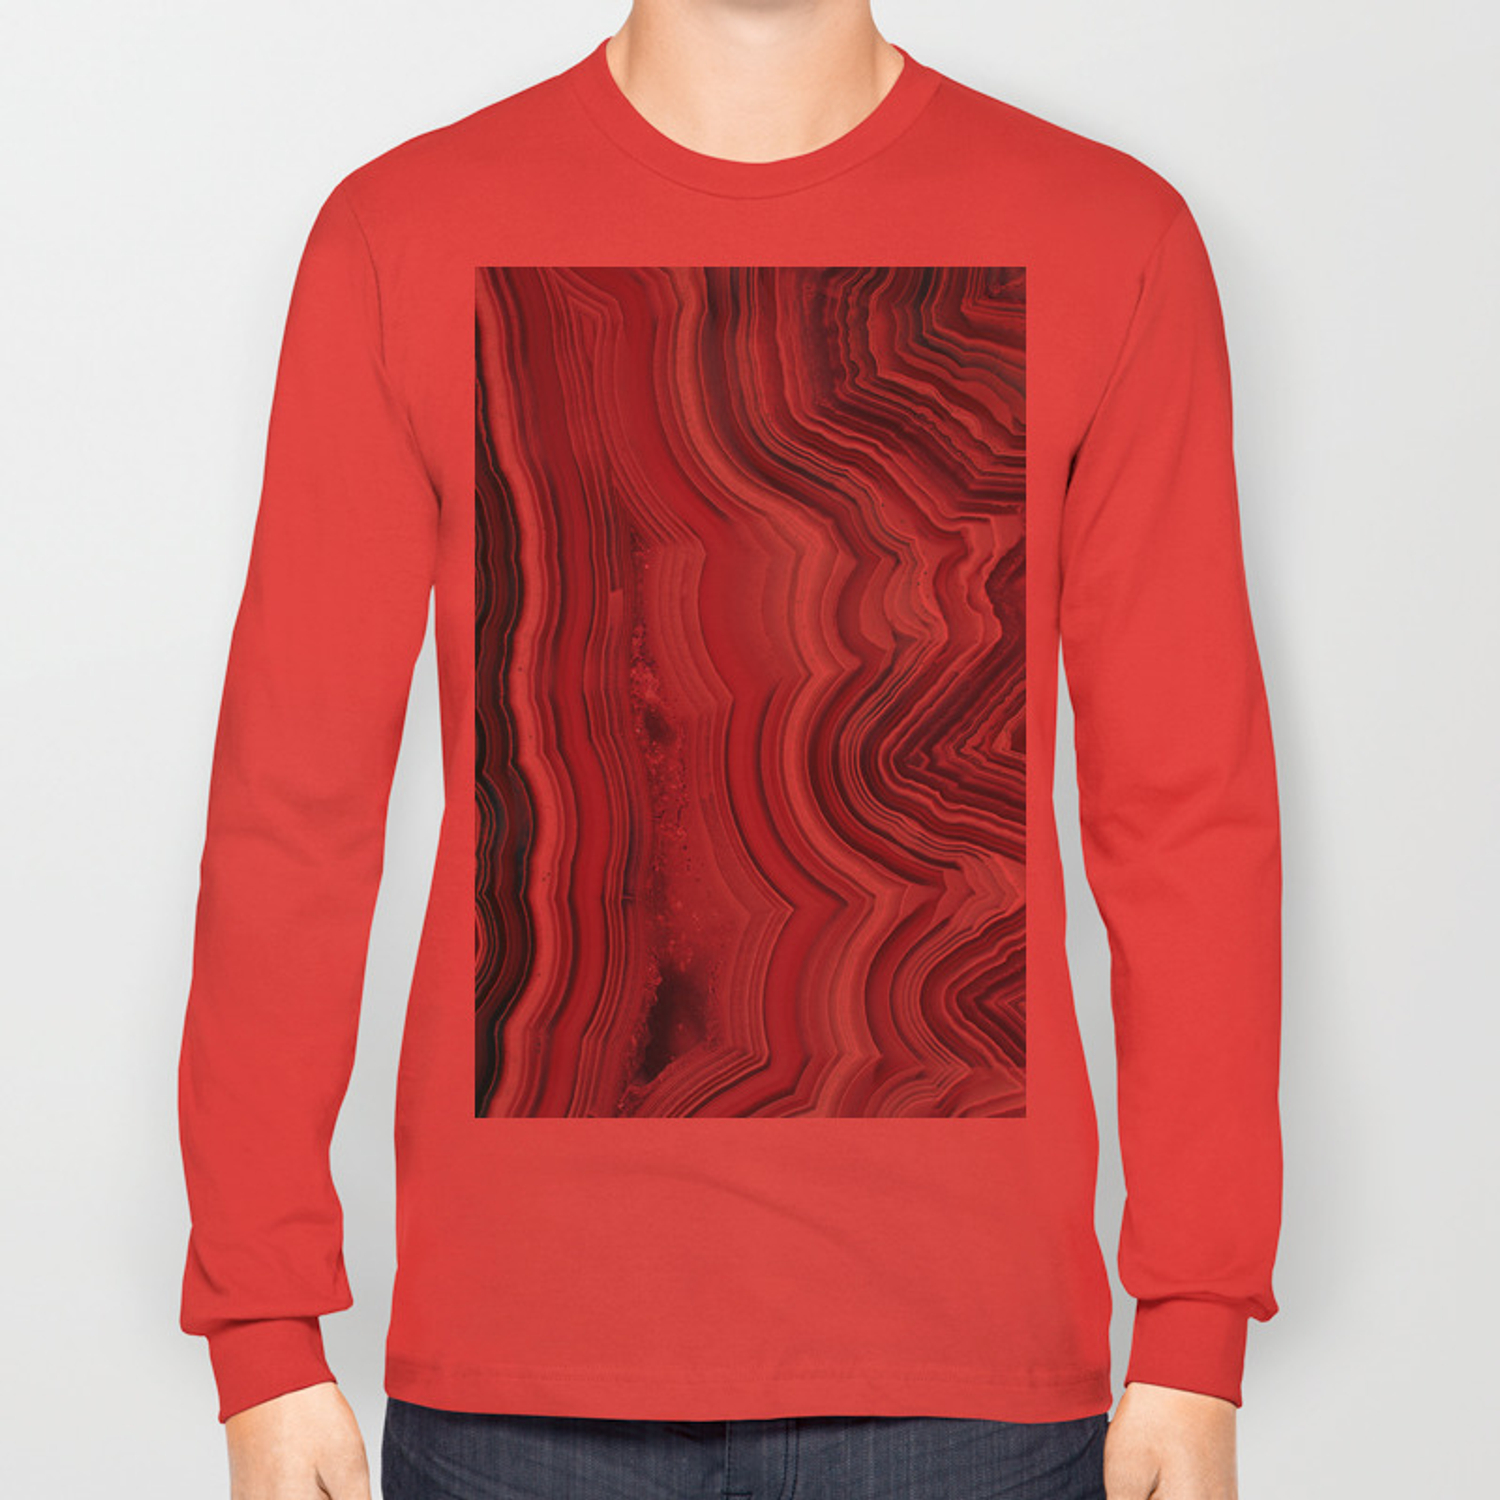 framed agate slices.htm candy floss agate slice long sleeve t shirt by thequarry society6  candy floss agate slice long sleeve t